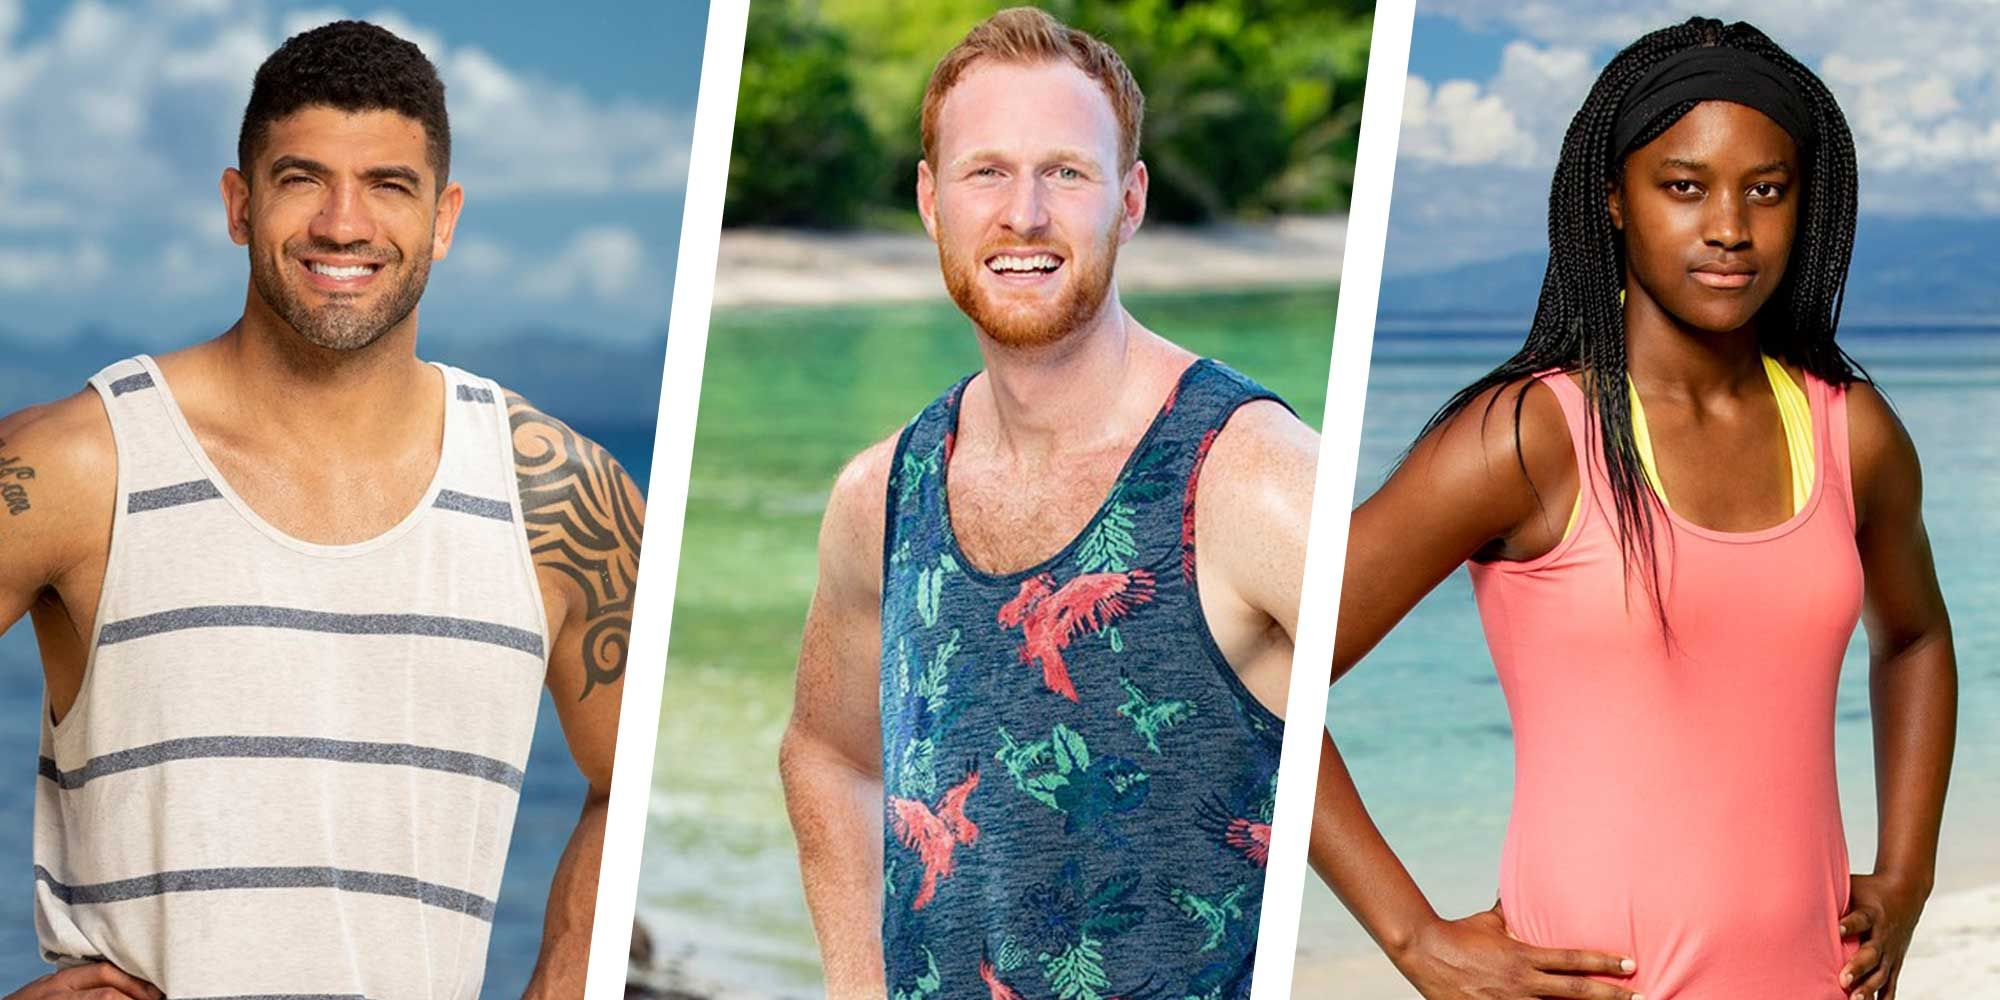 Meet the Cast of Survivor 39: Island of the Idols